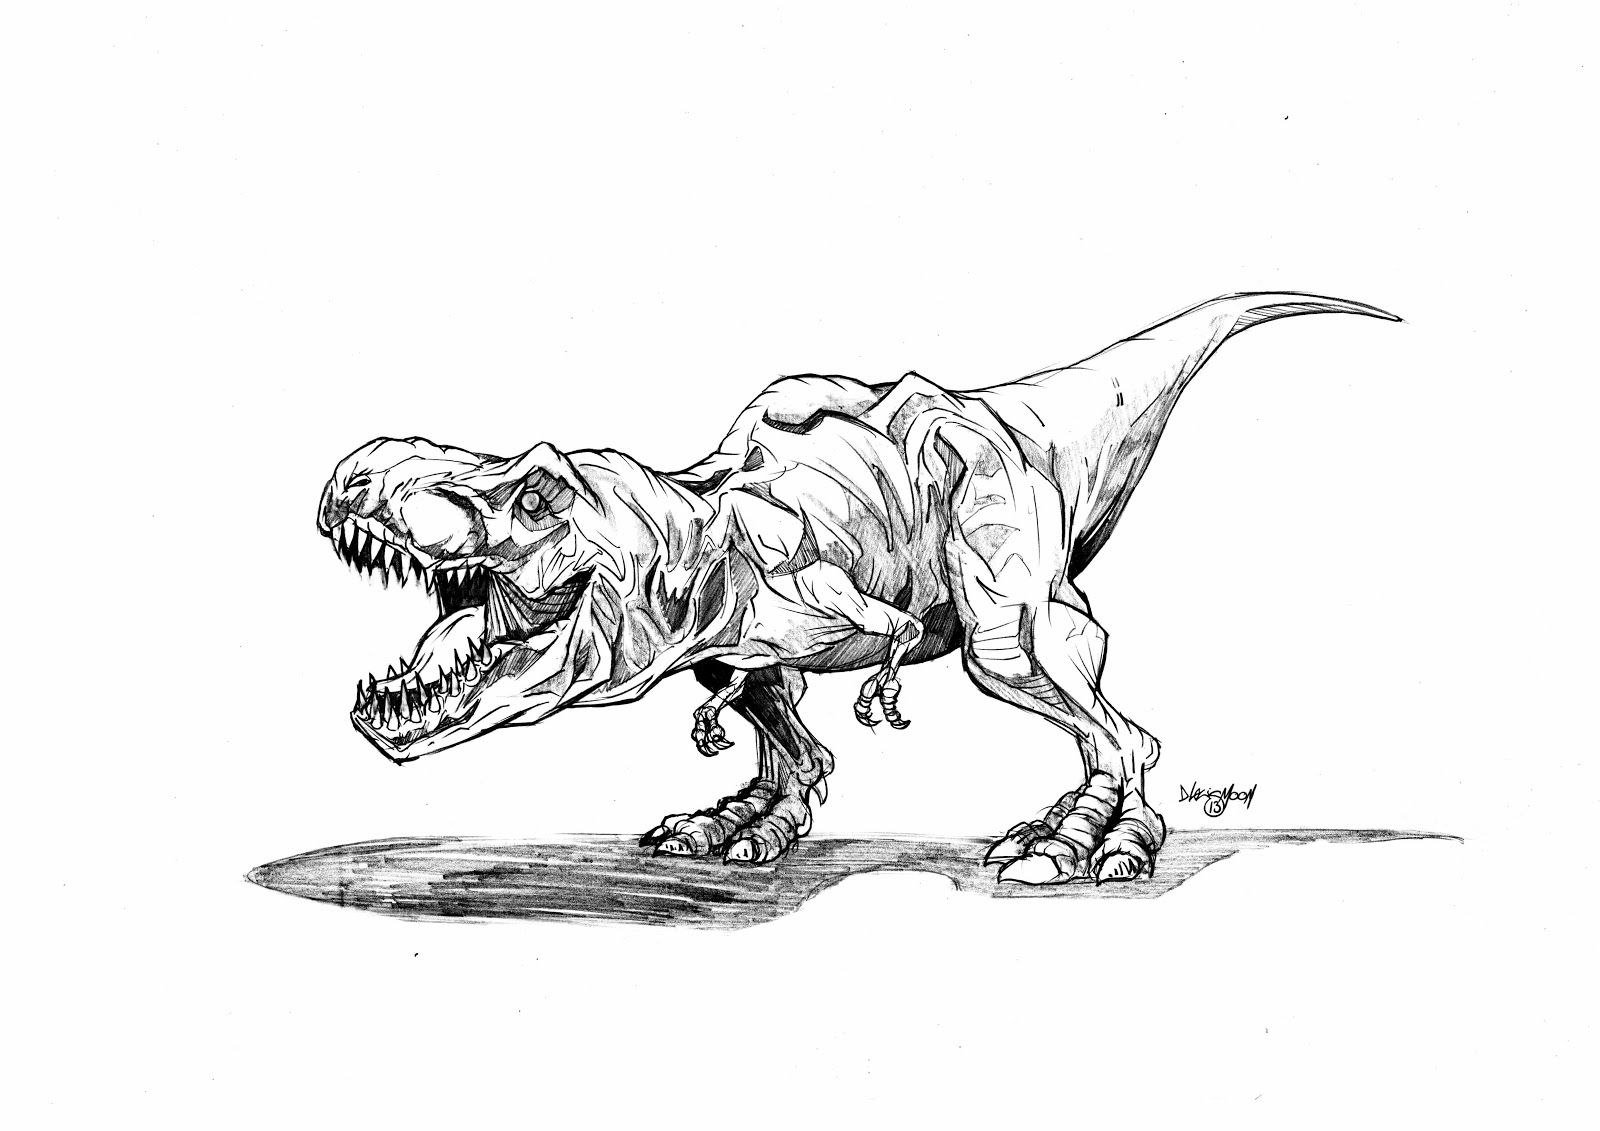 Colouring in jurassic park - Jurassic Park Coloring Pages 16 Pictures Colorine Net 14637